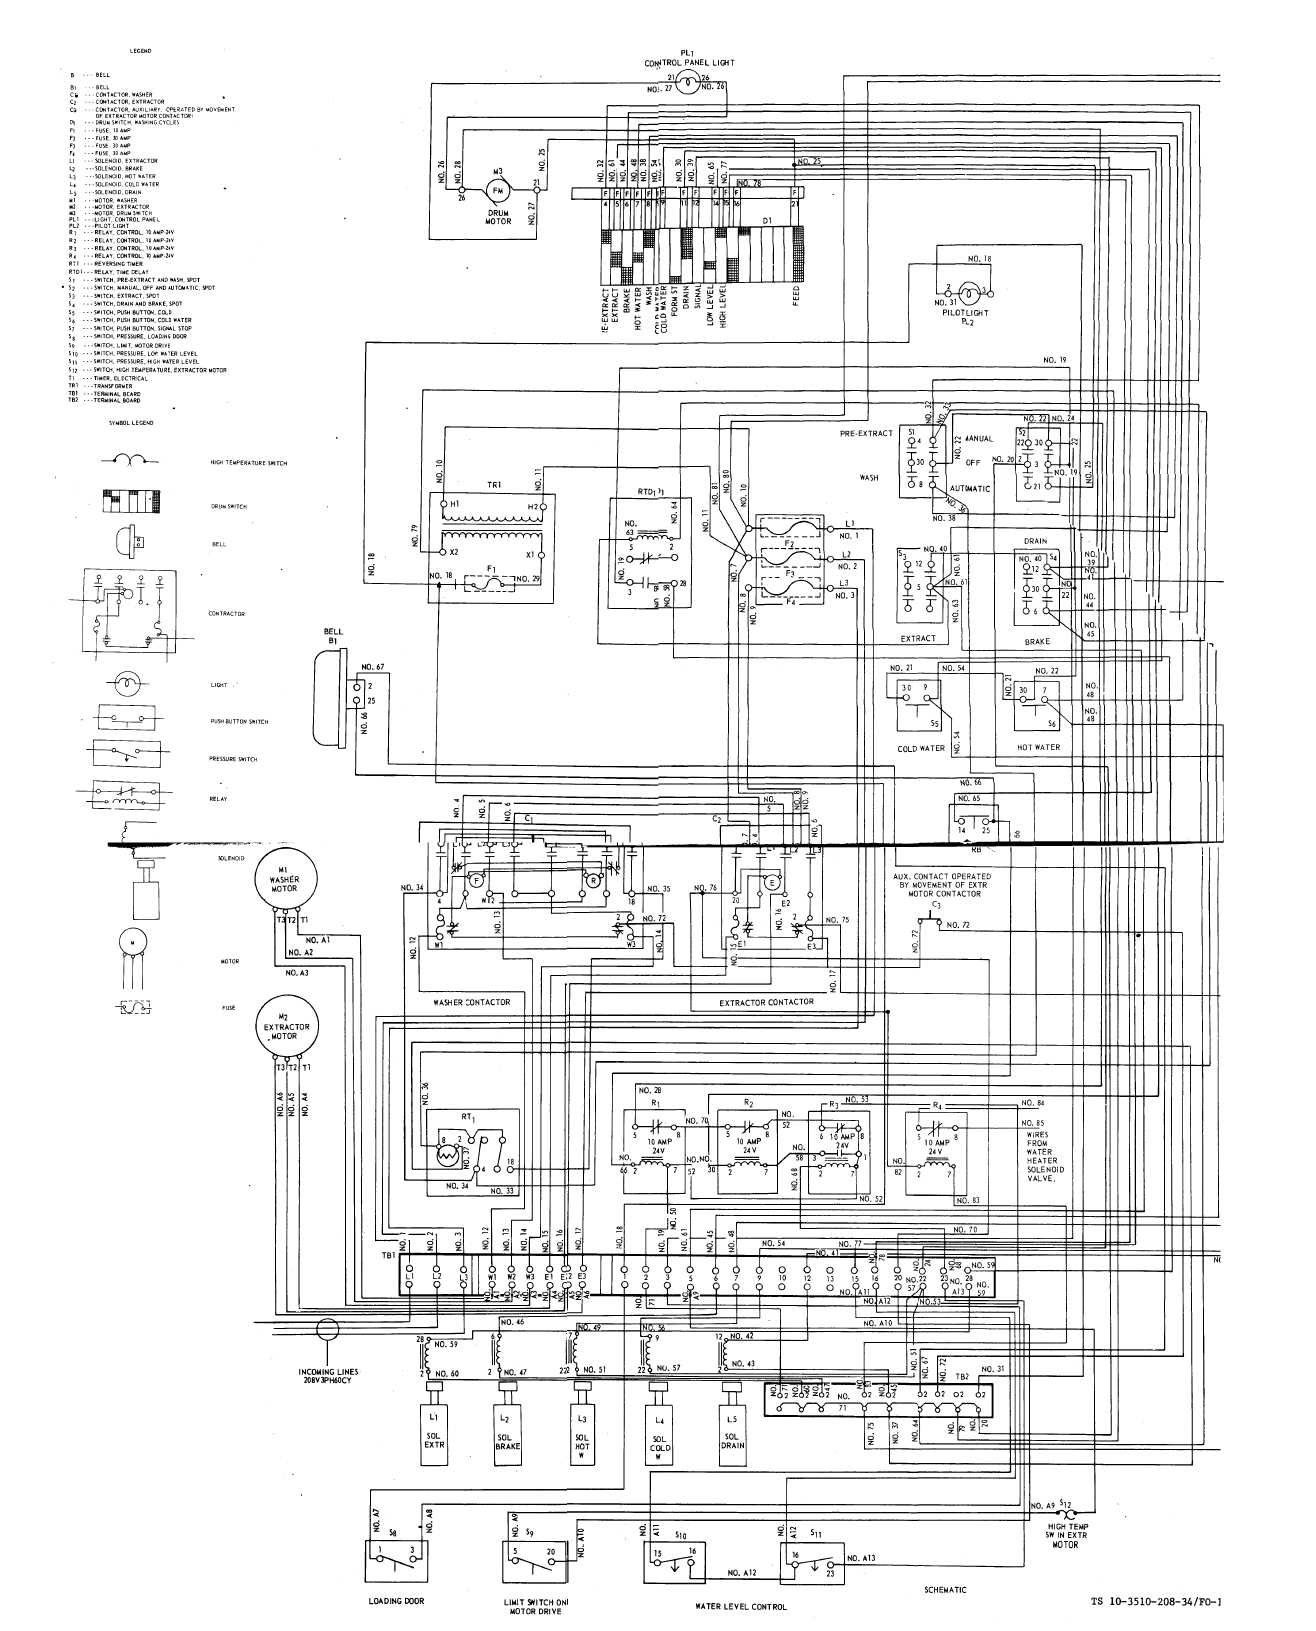 schematic wiring diagram (washer-extractor)